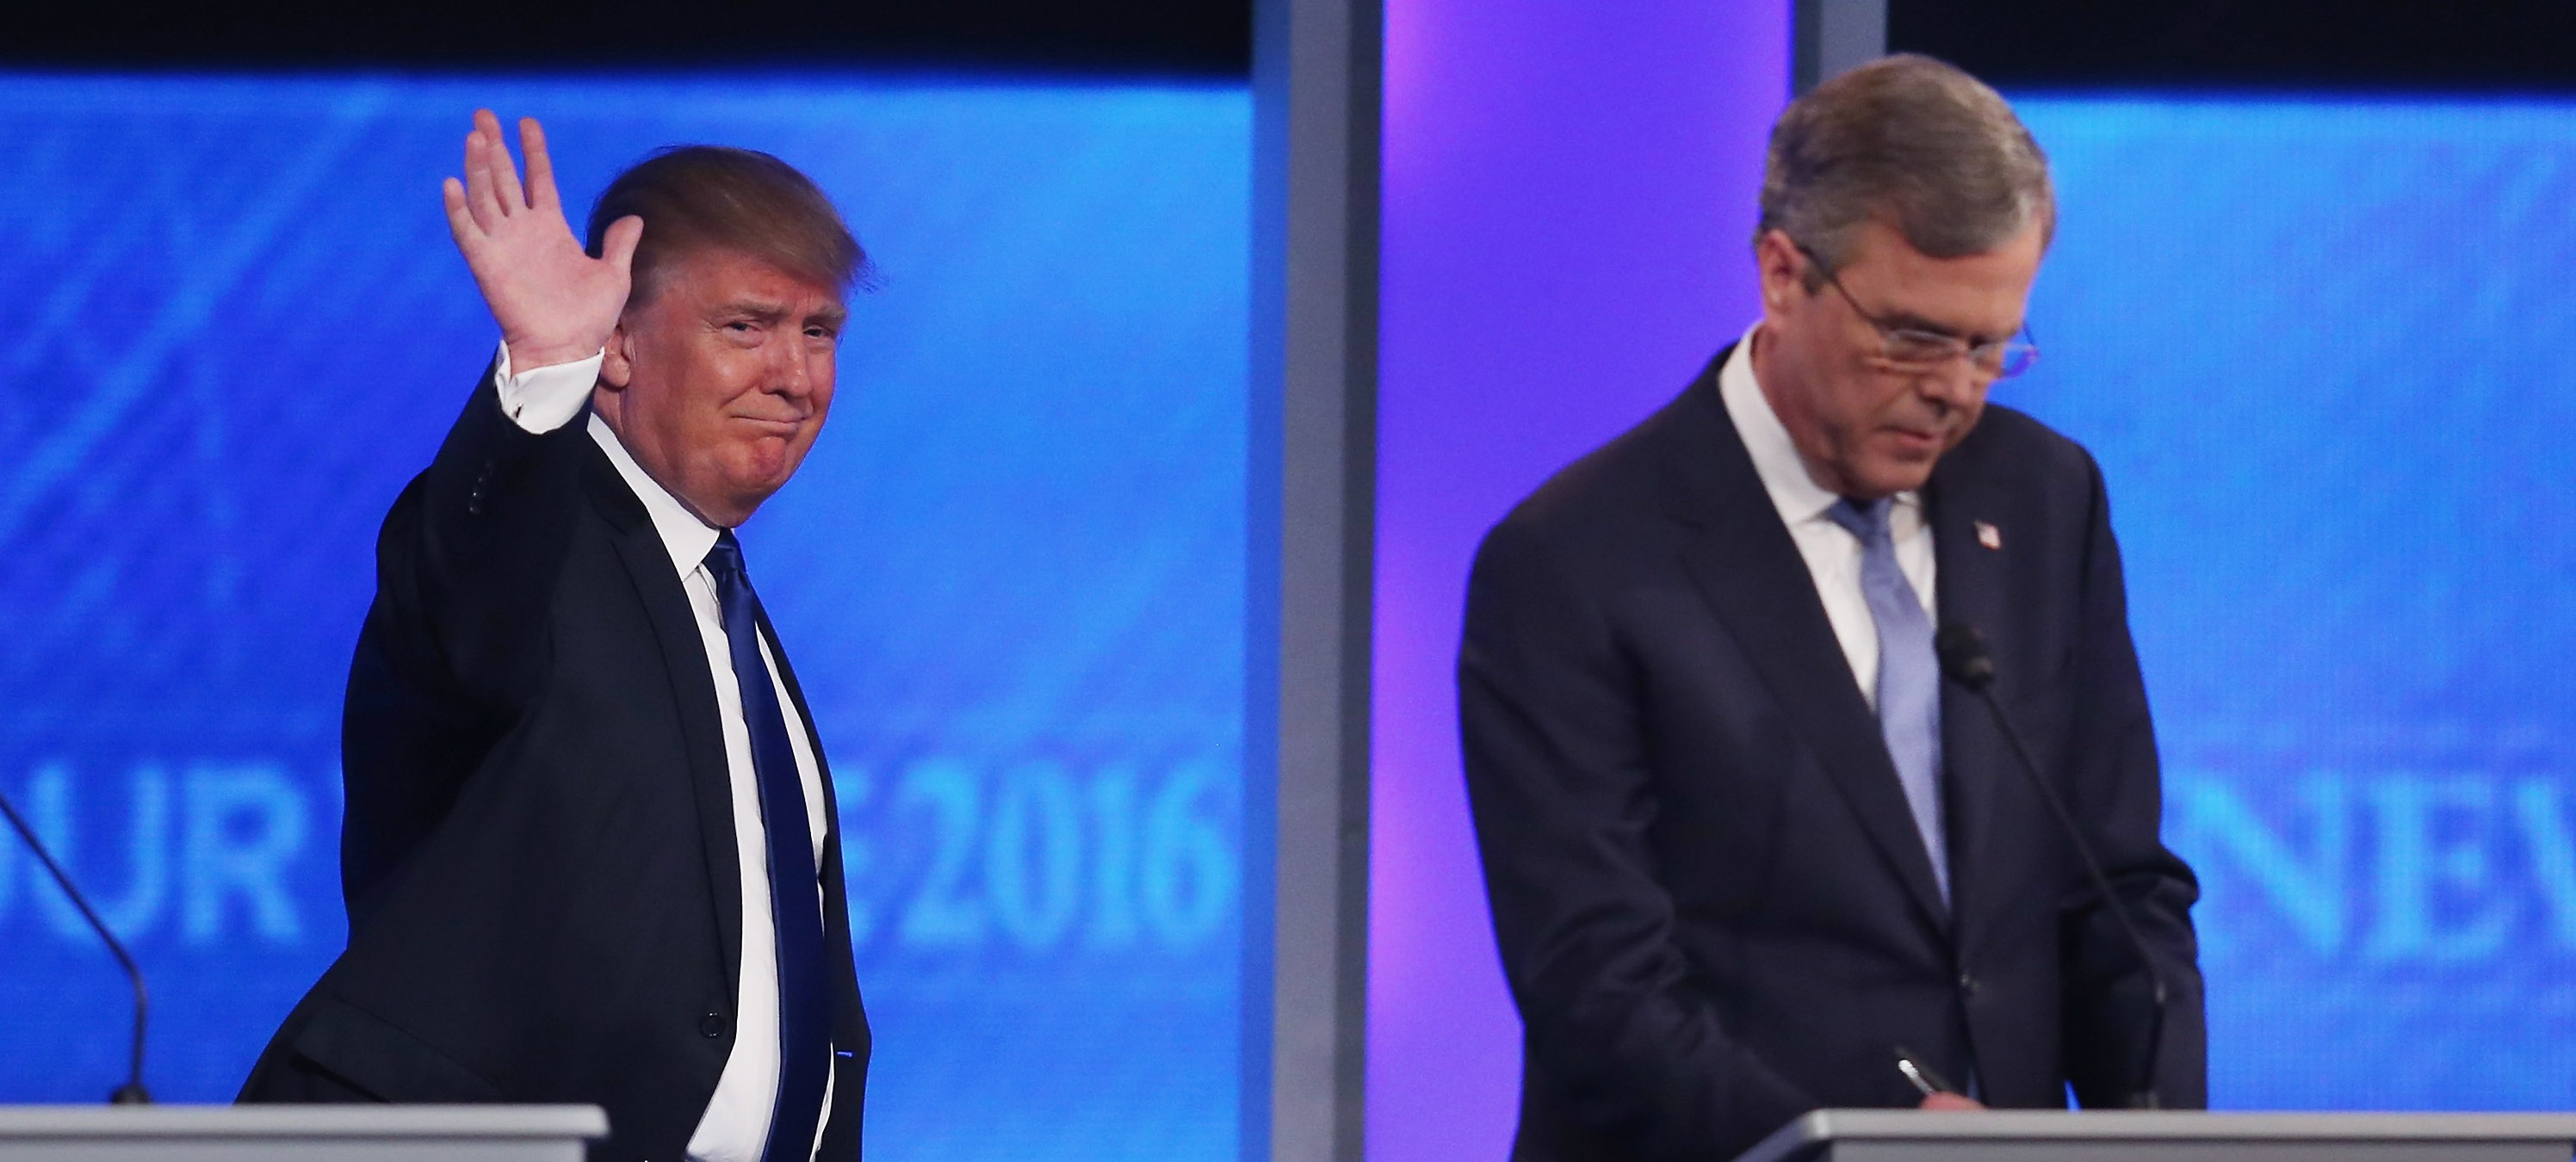 MANCHESTER, NH - FEBRUARY 06:  Republican presidential candidates Donald Trump (L) and  Jeb Bush take the stage for the Republican presidential debate at St. Anselm College February 6, 2016 in Manchester, New Hampshire. Sponsored by ABC News, the Independent Journal Review and Google, this is the final televised debate before voters go to the polls for the New Hampshire primary on February 9.  (Photo by Joe Raedle/Getty Images)